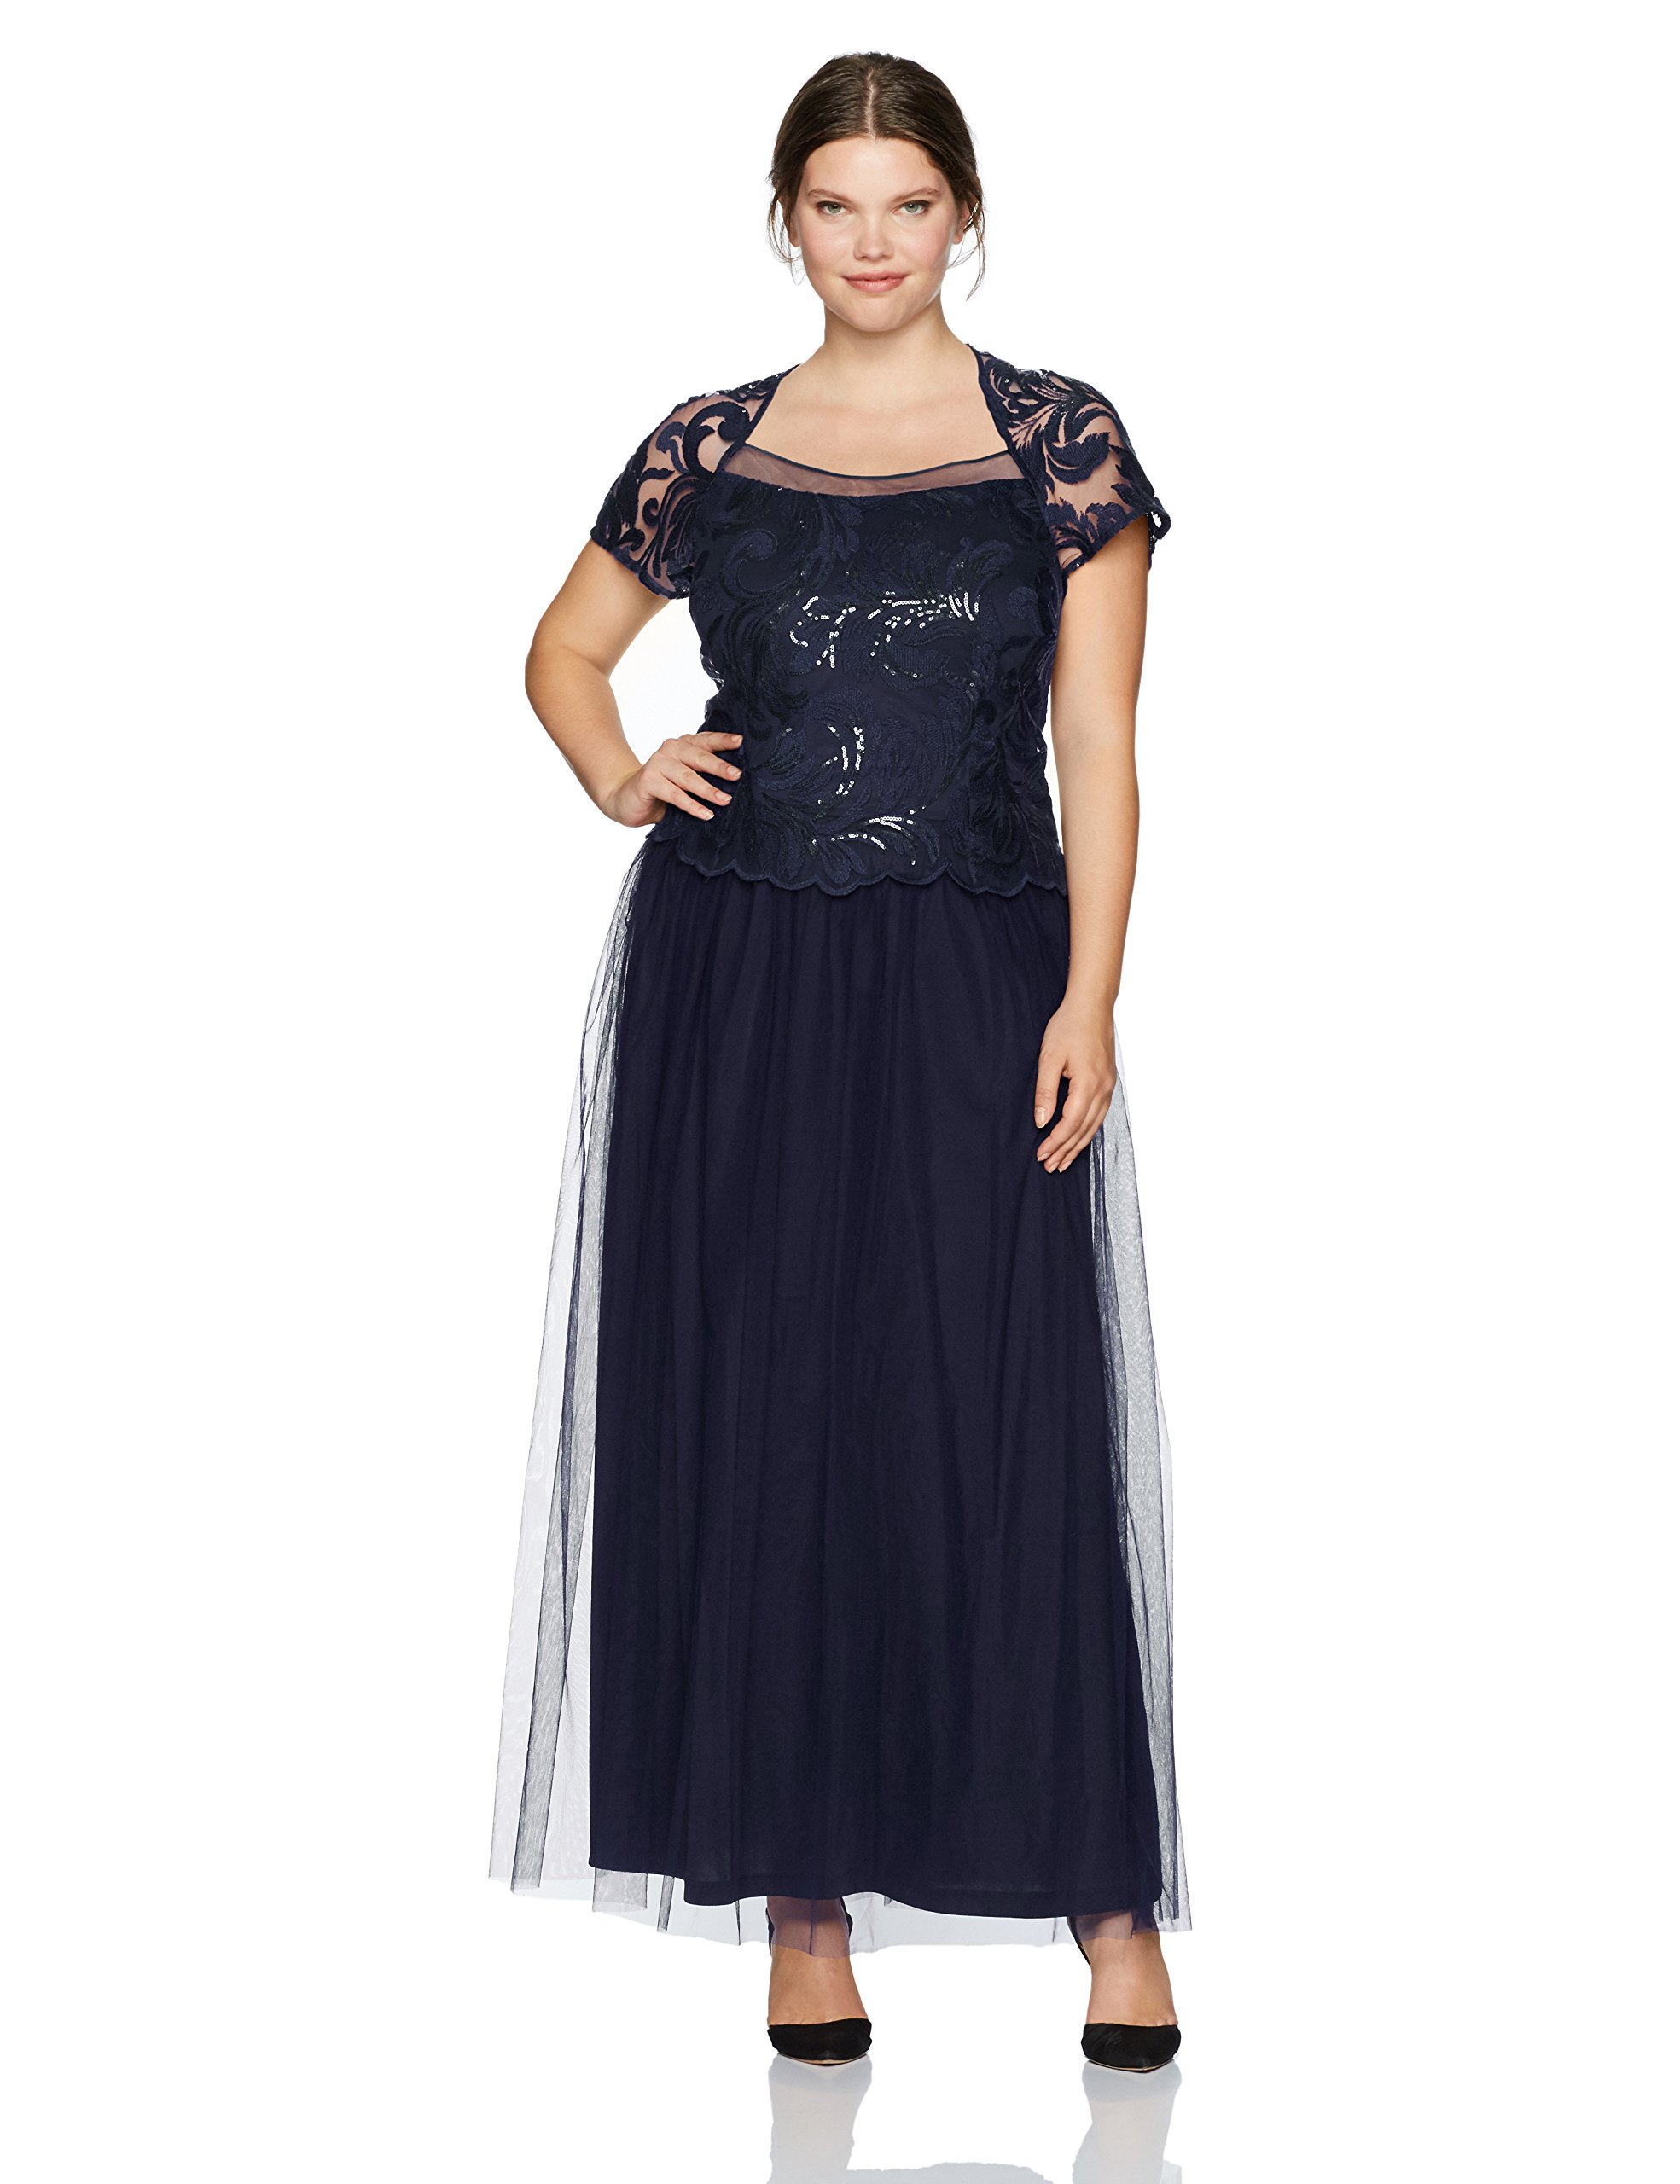 Le Bos Women's Plus Size Mock 2 PC Embroided Long Gown, Navy, 14W